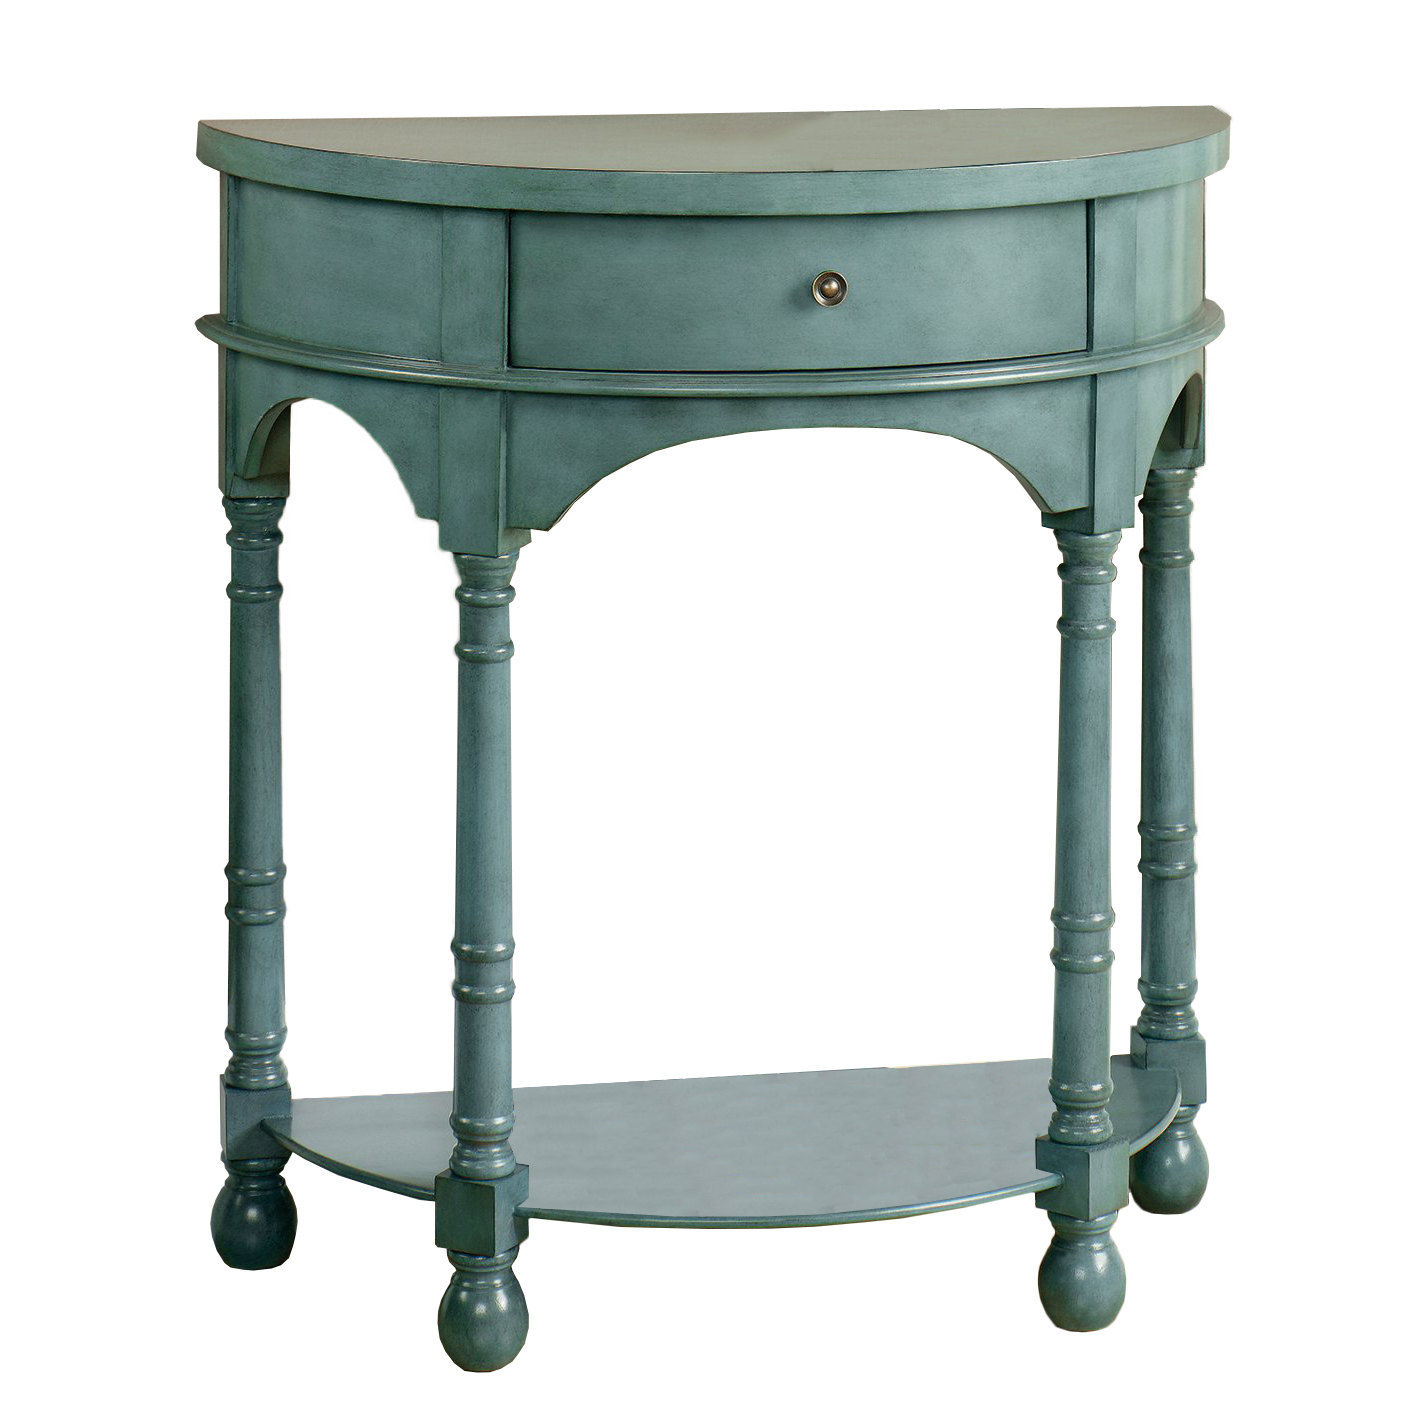 Sauder Harbor View Country Accent Table, Antiqued Teal by Sauder Woodworking